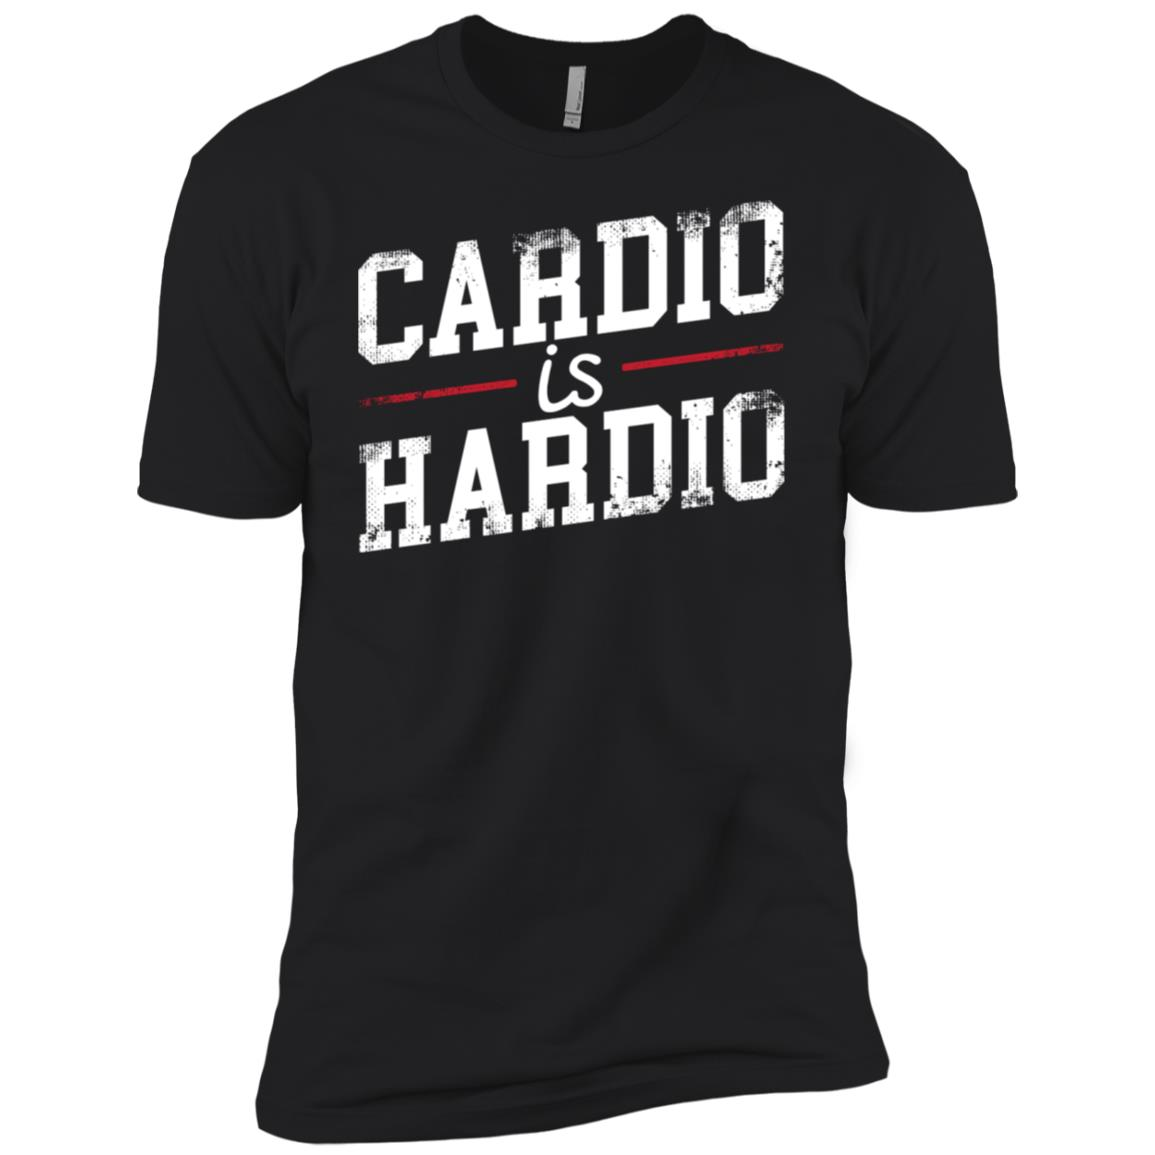 Cardio Is Hardio Fitness Workout Gift Men Short Sleeve T-Shirt